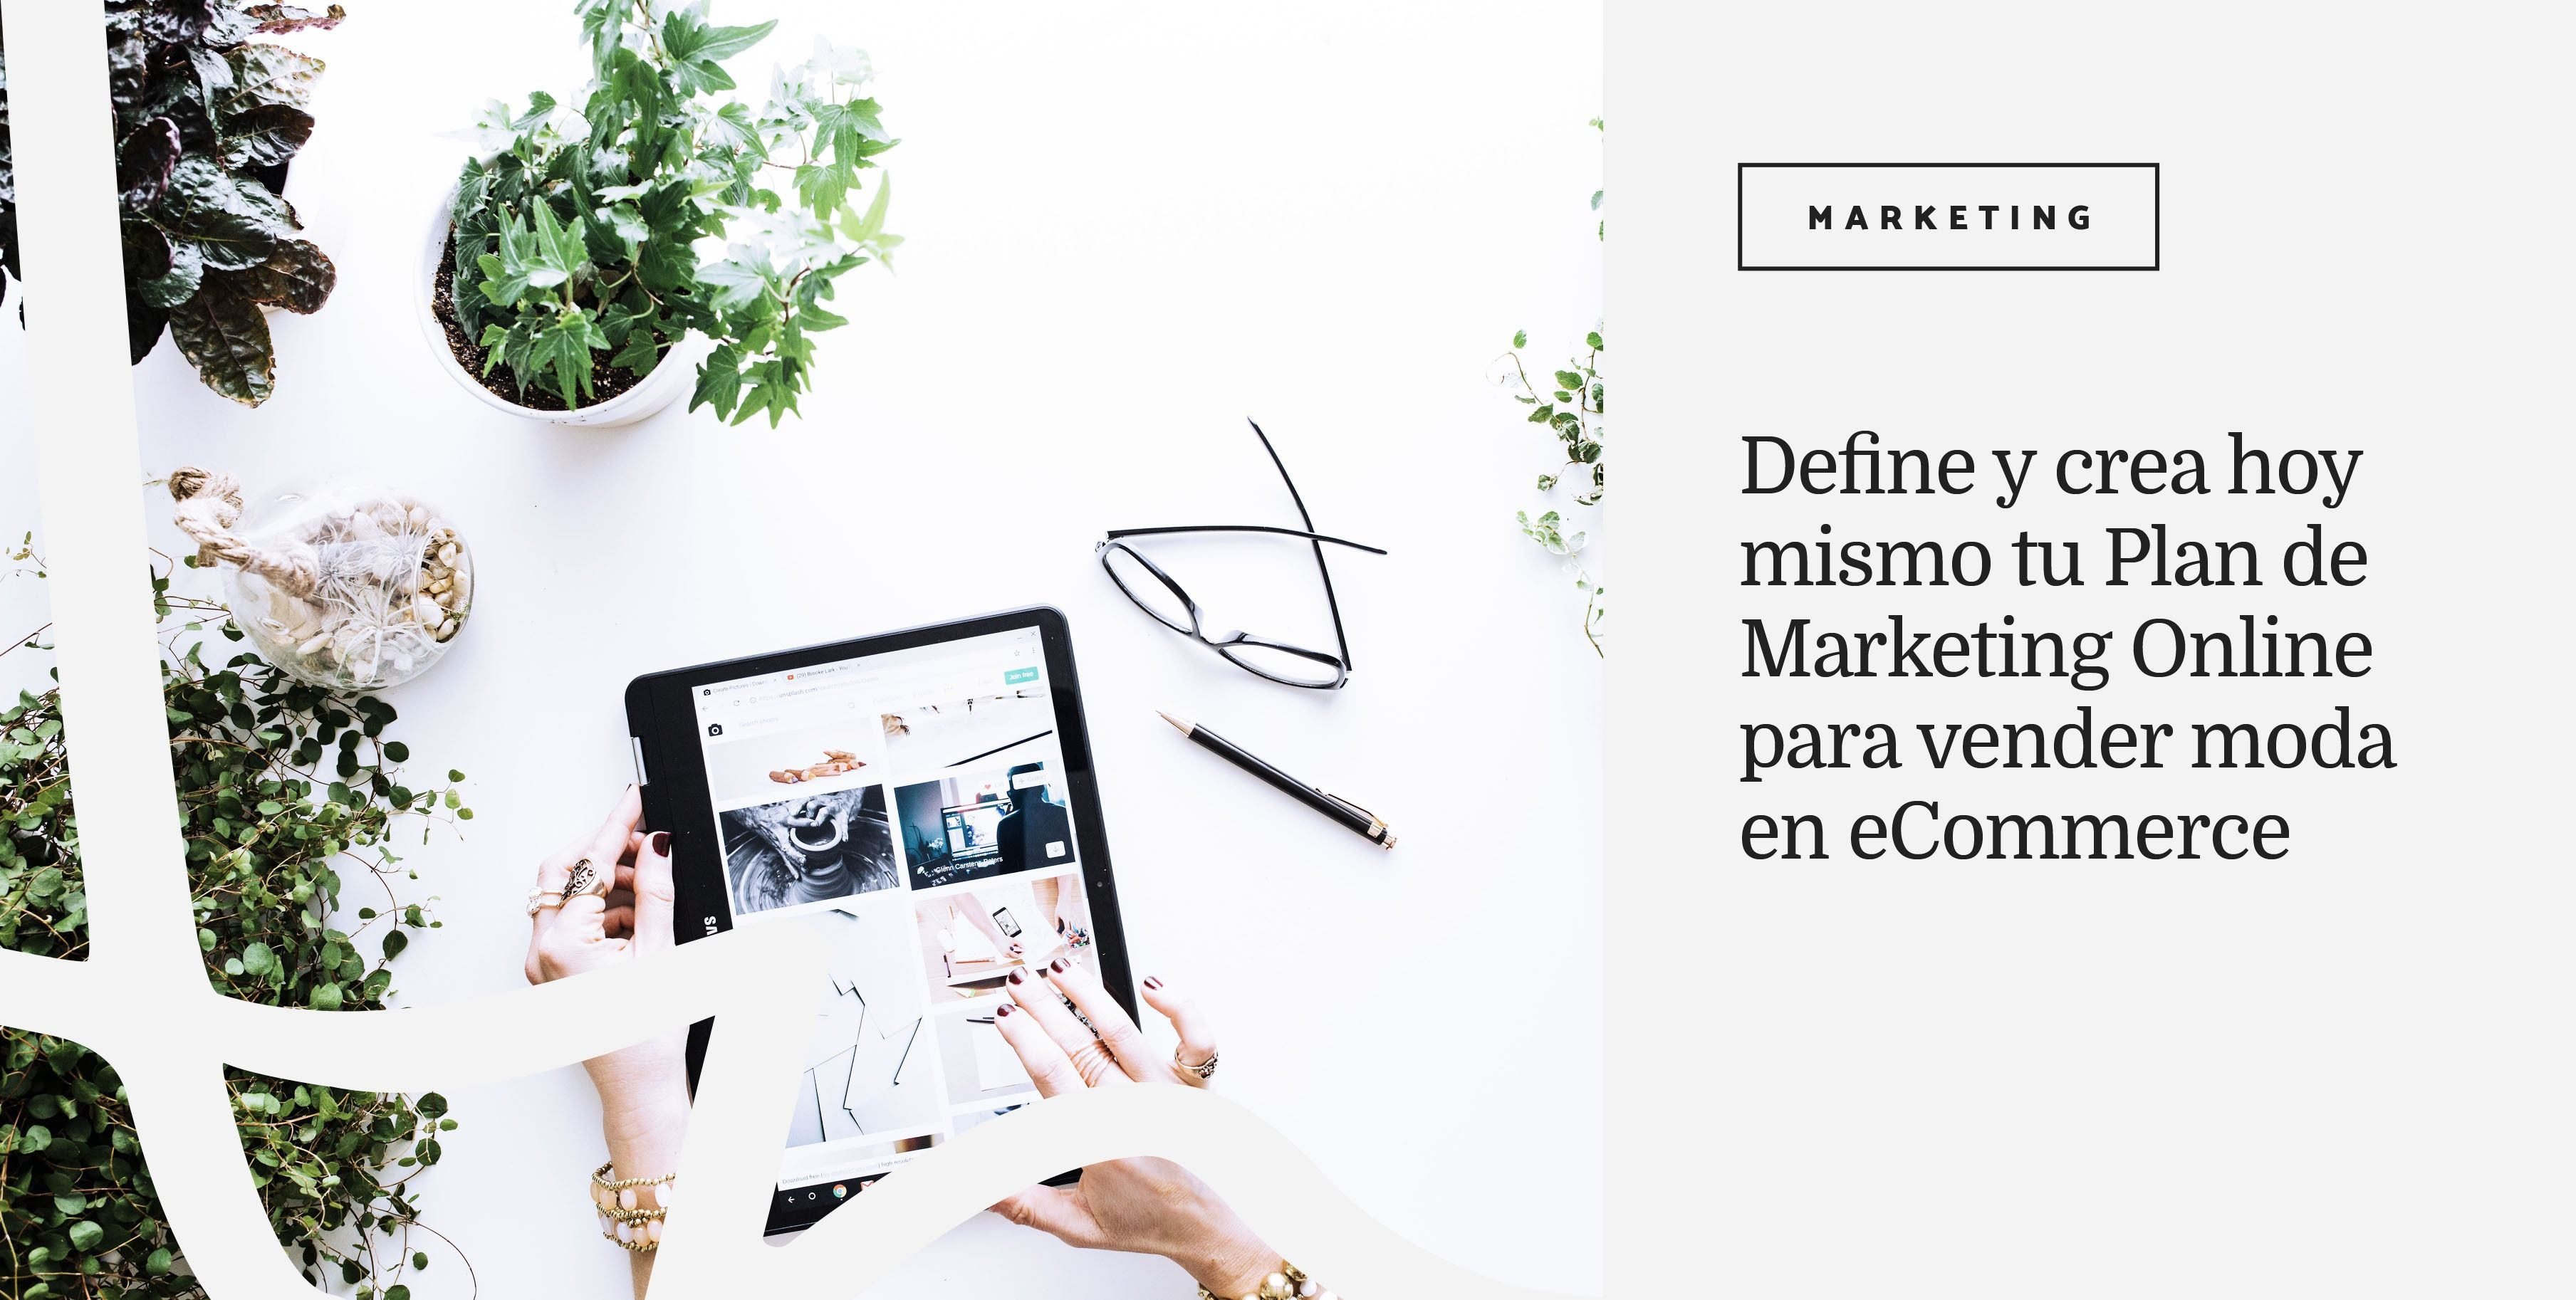 Plan-de-Marketing-2019-para-marcas-de-moda-Ana-Diaz-del-Rio-Portada.jpg